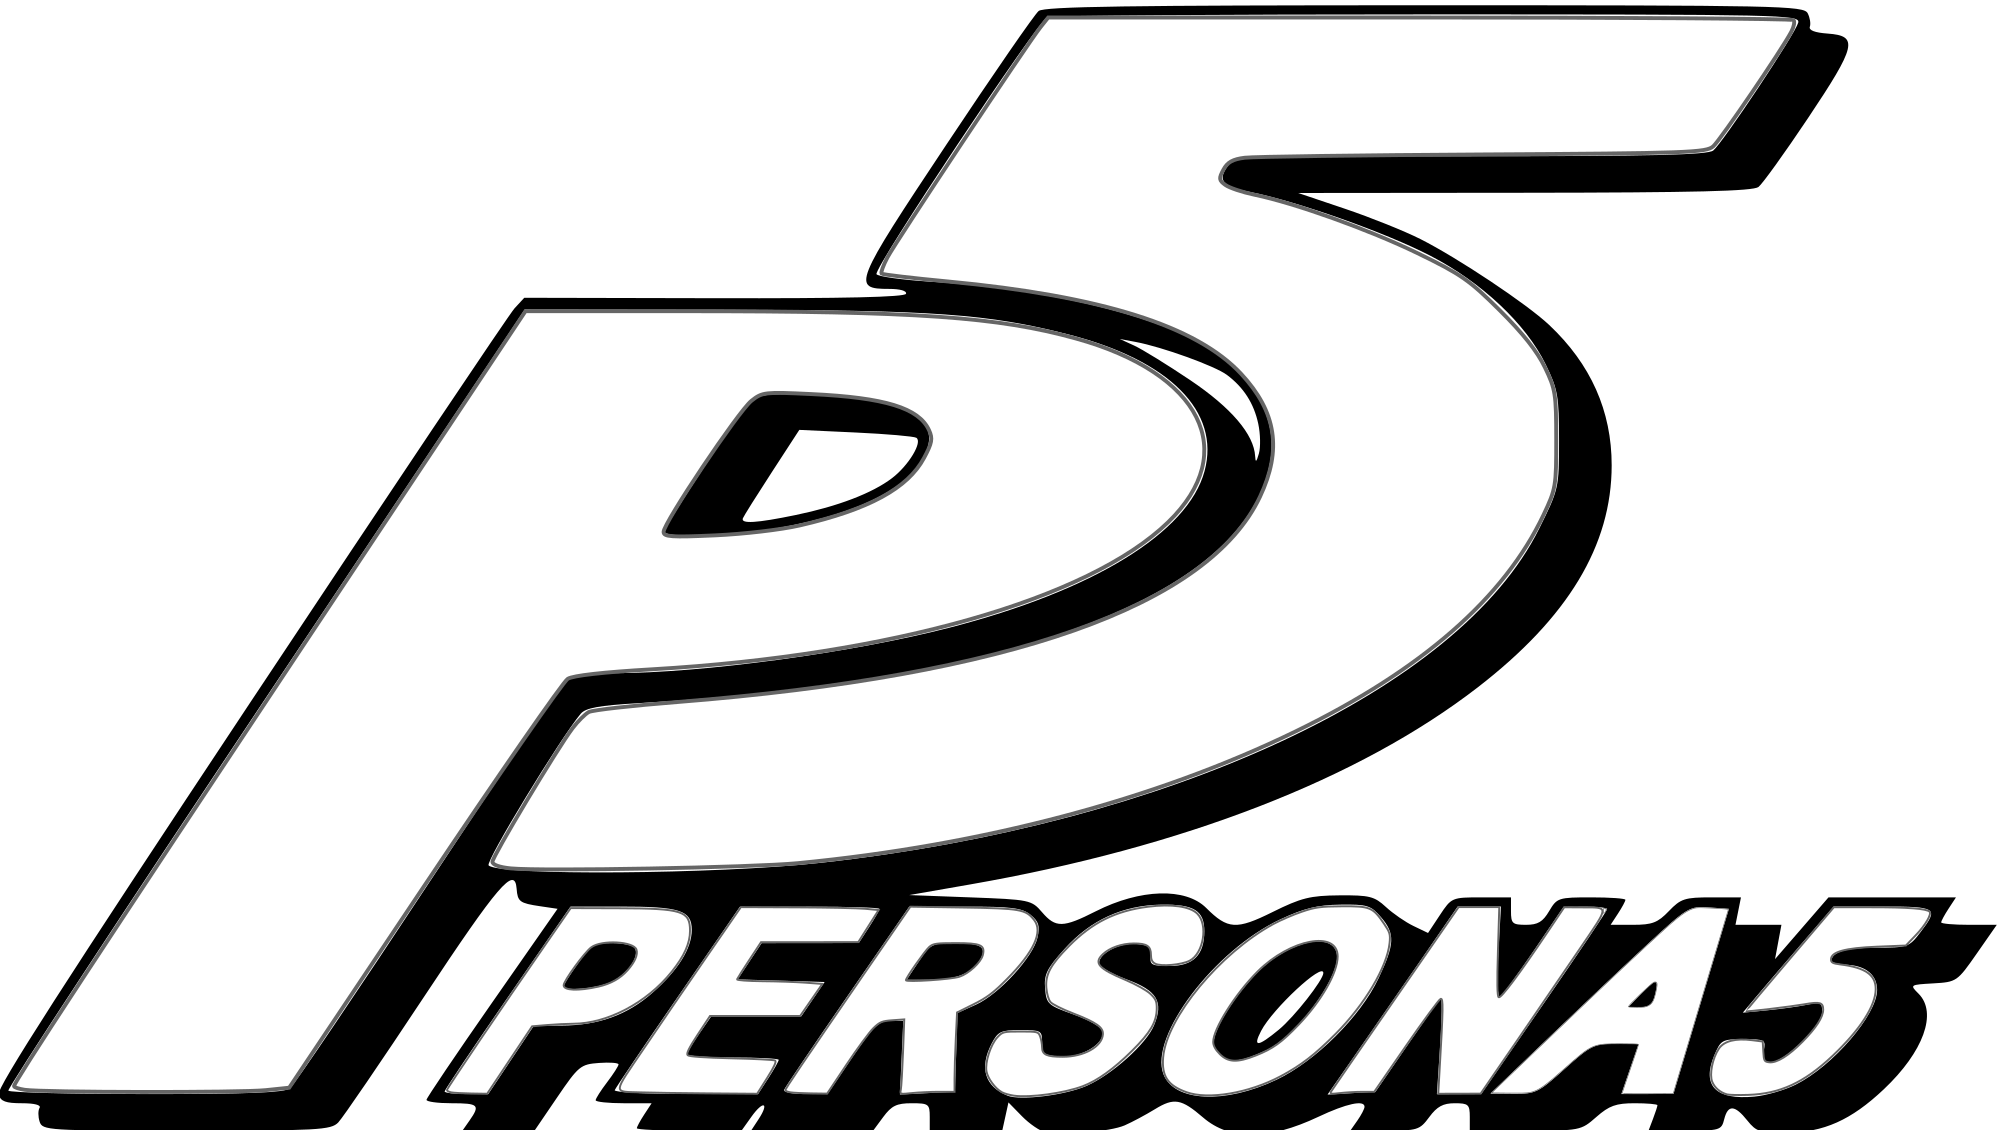 Persona 5 logo png. File svg wikimedia commons